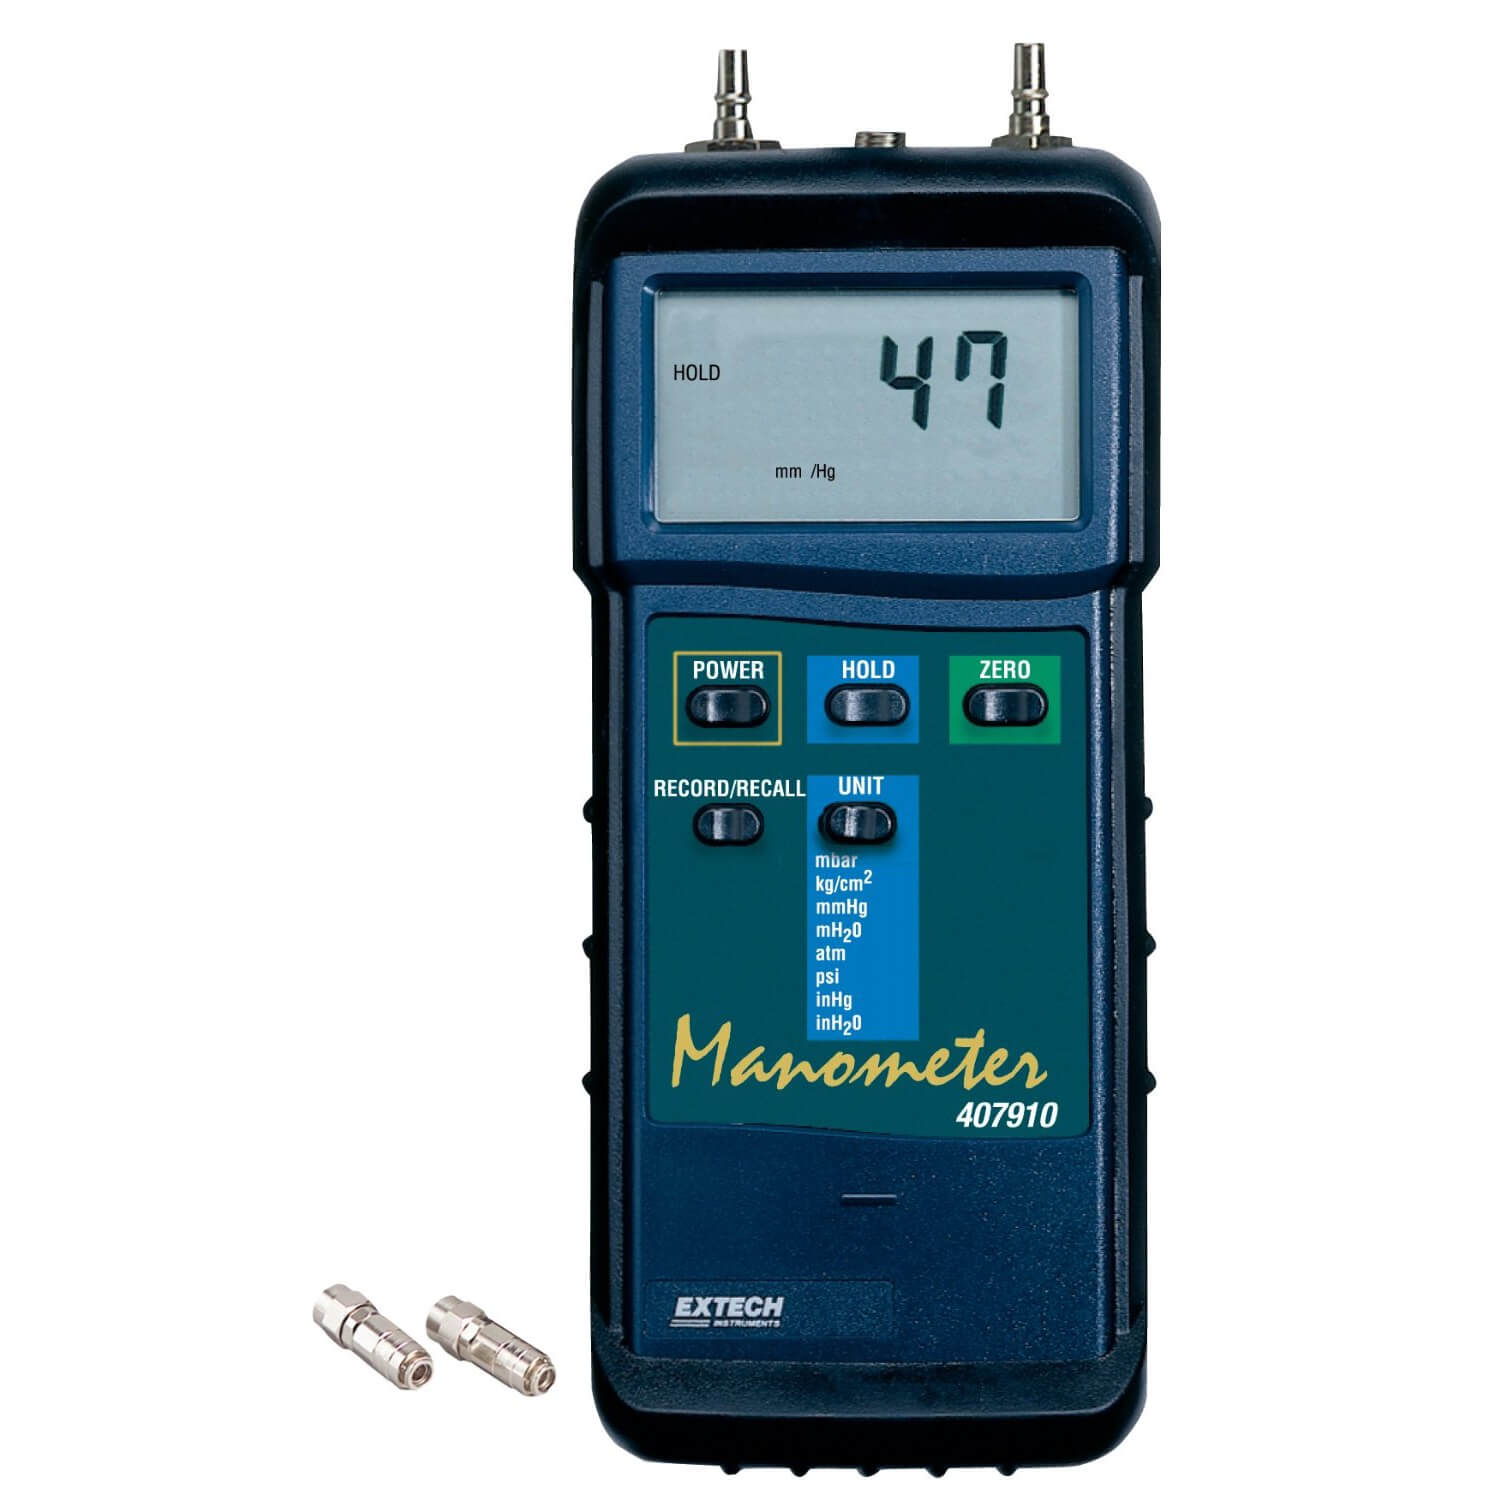 Extech 407910 Heavy Duty Digital Differential Pressure Manometer